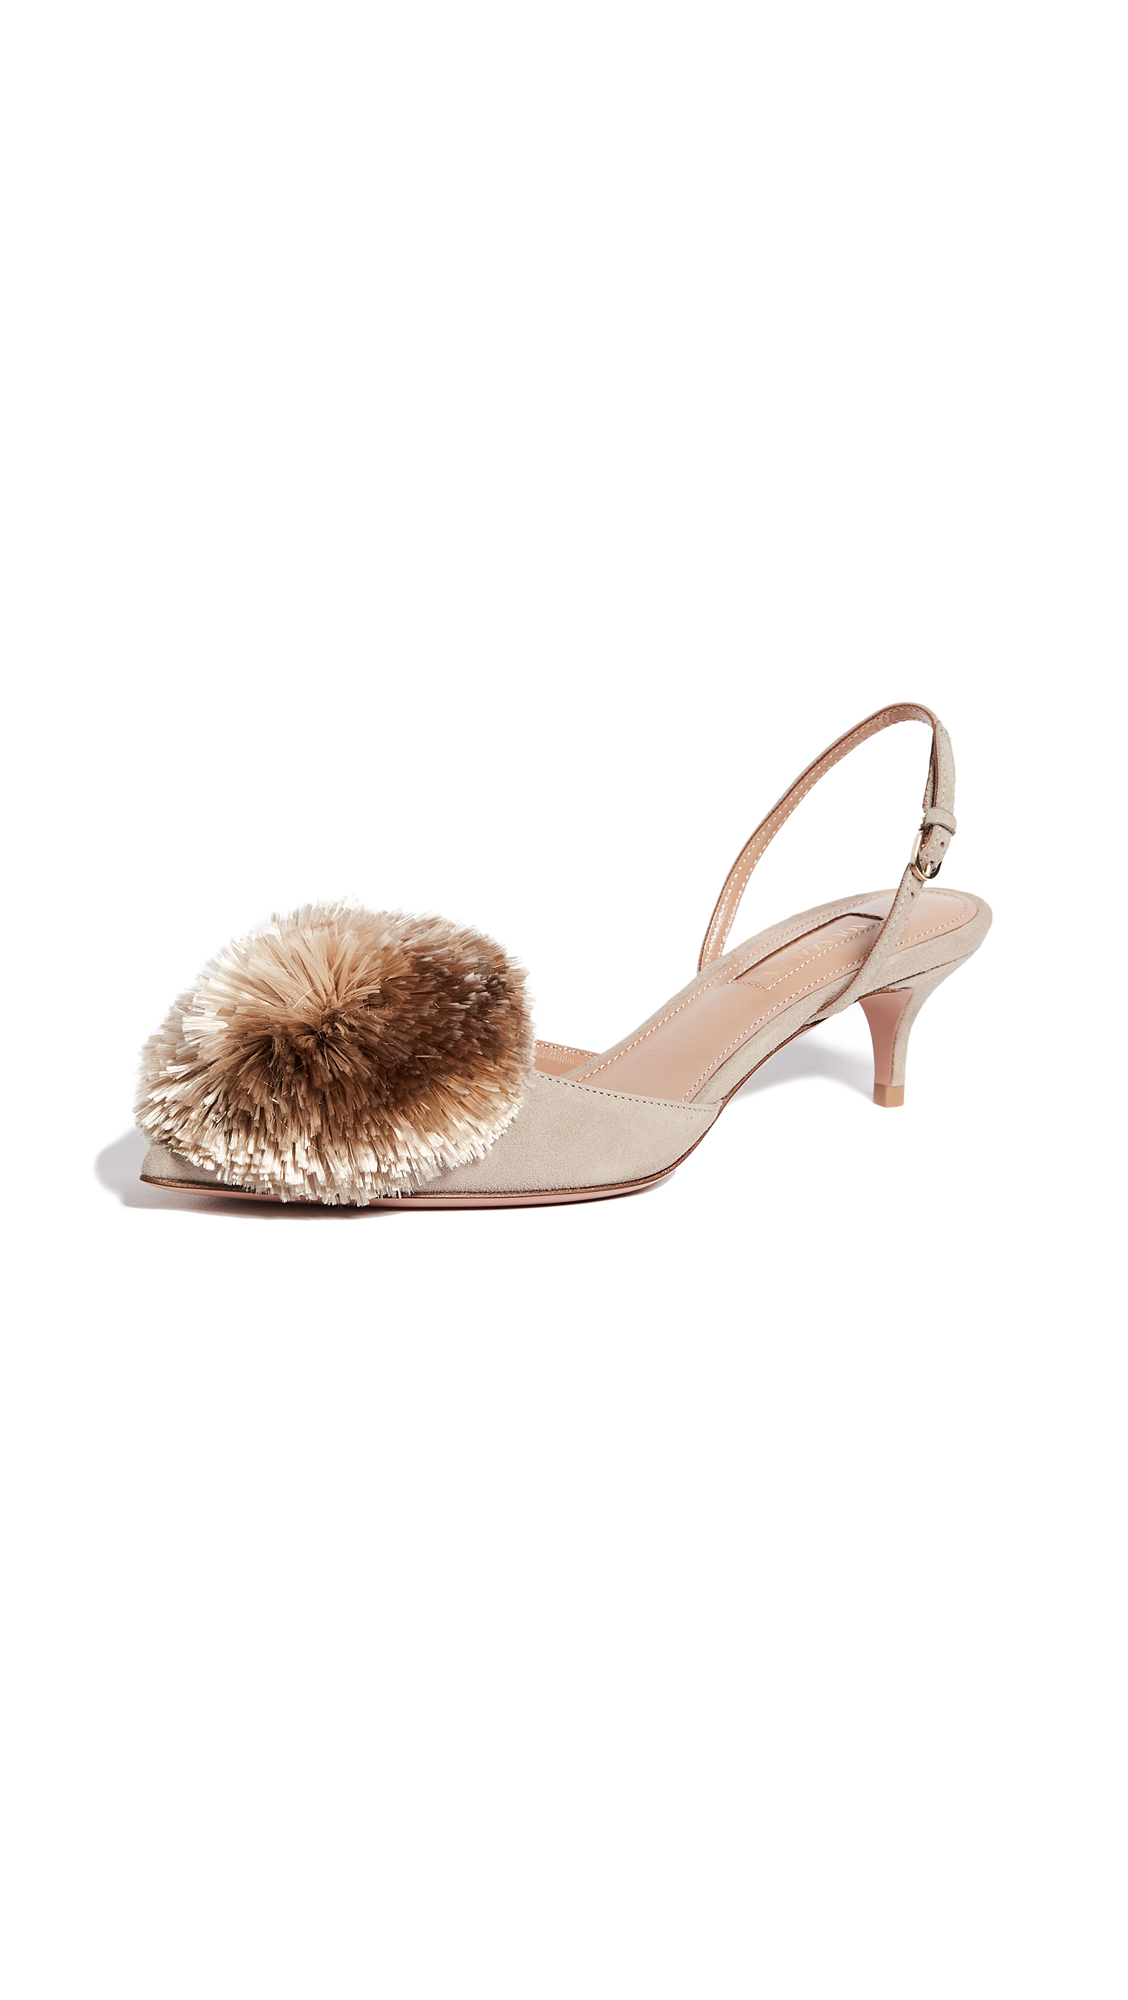 Aquazzura Powder Puff 45 Sling Pumps - Marble